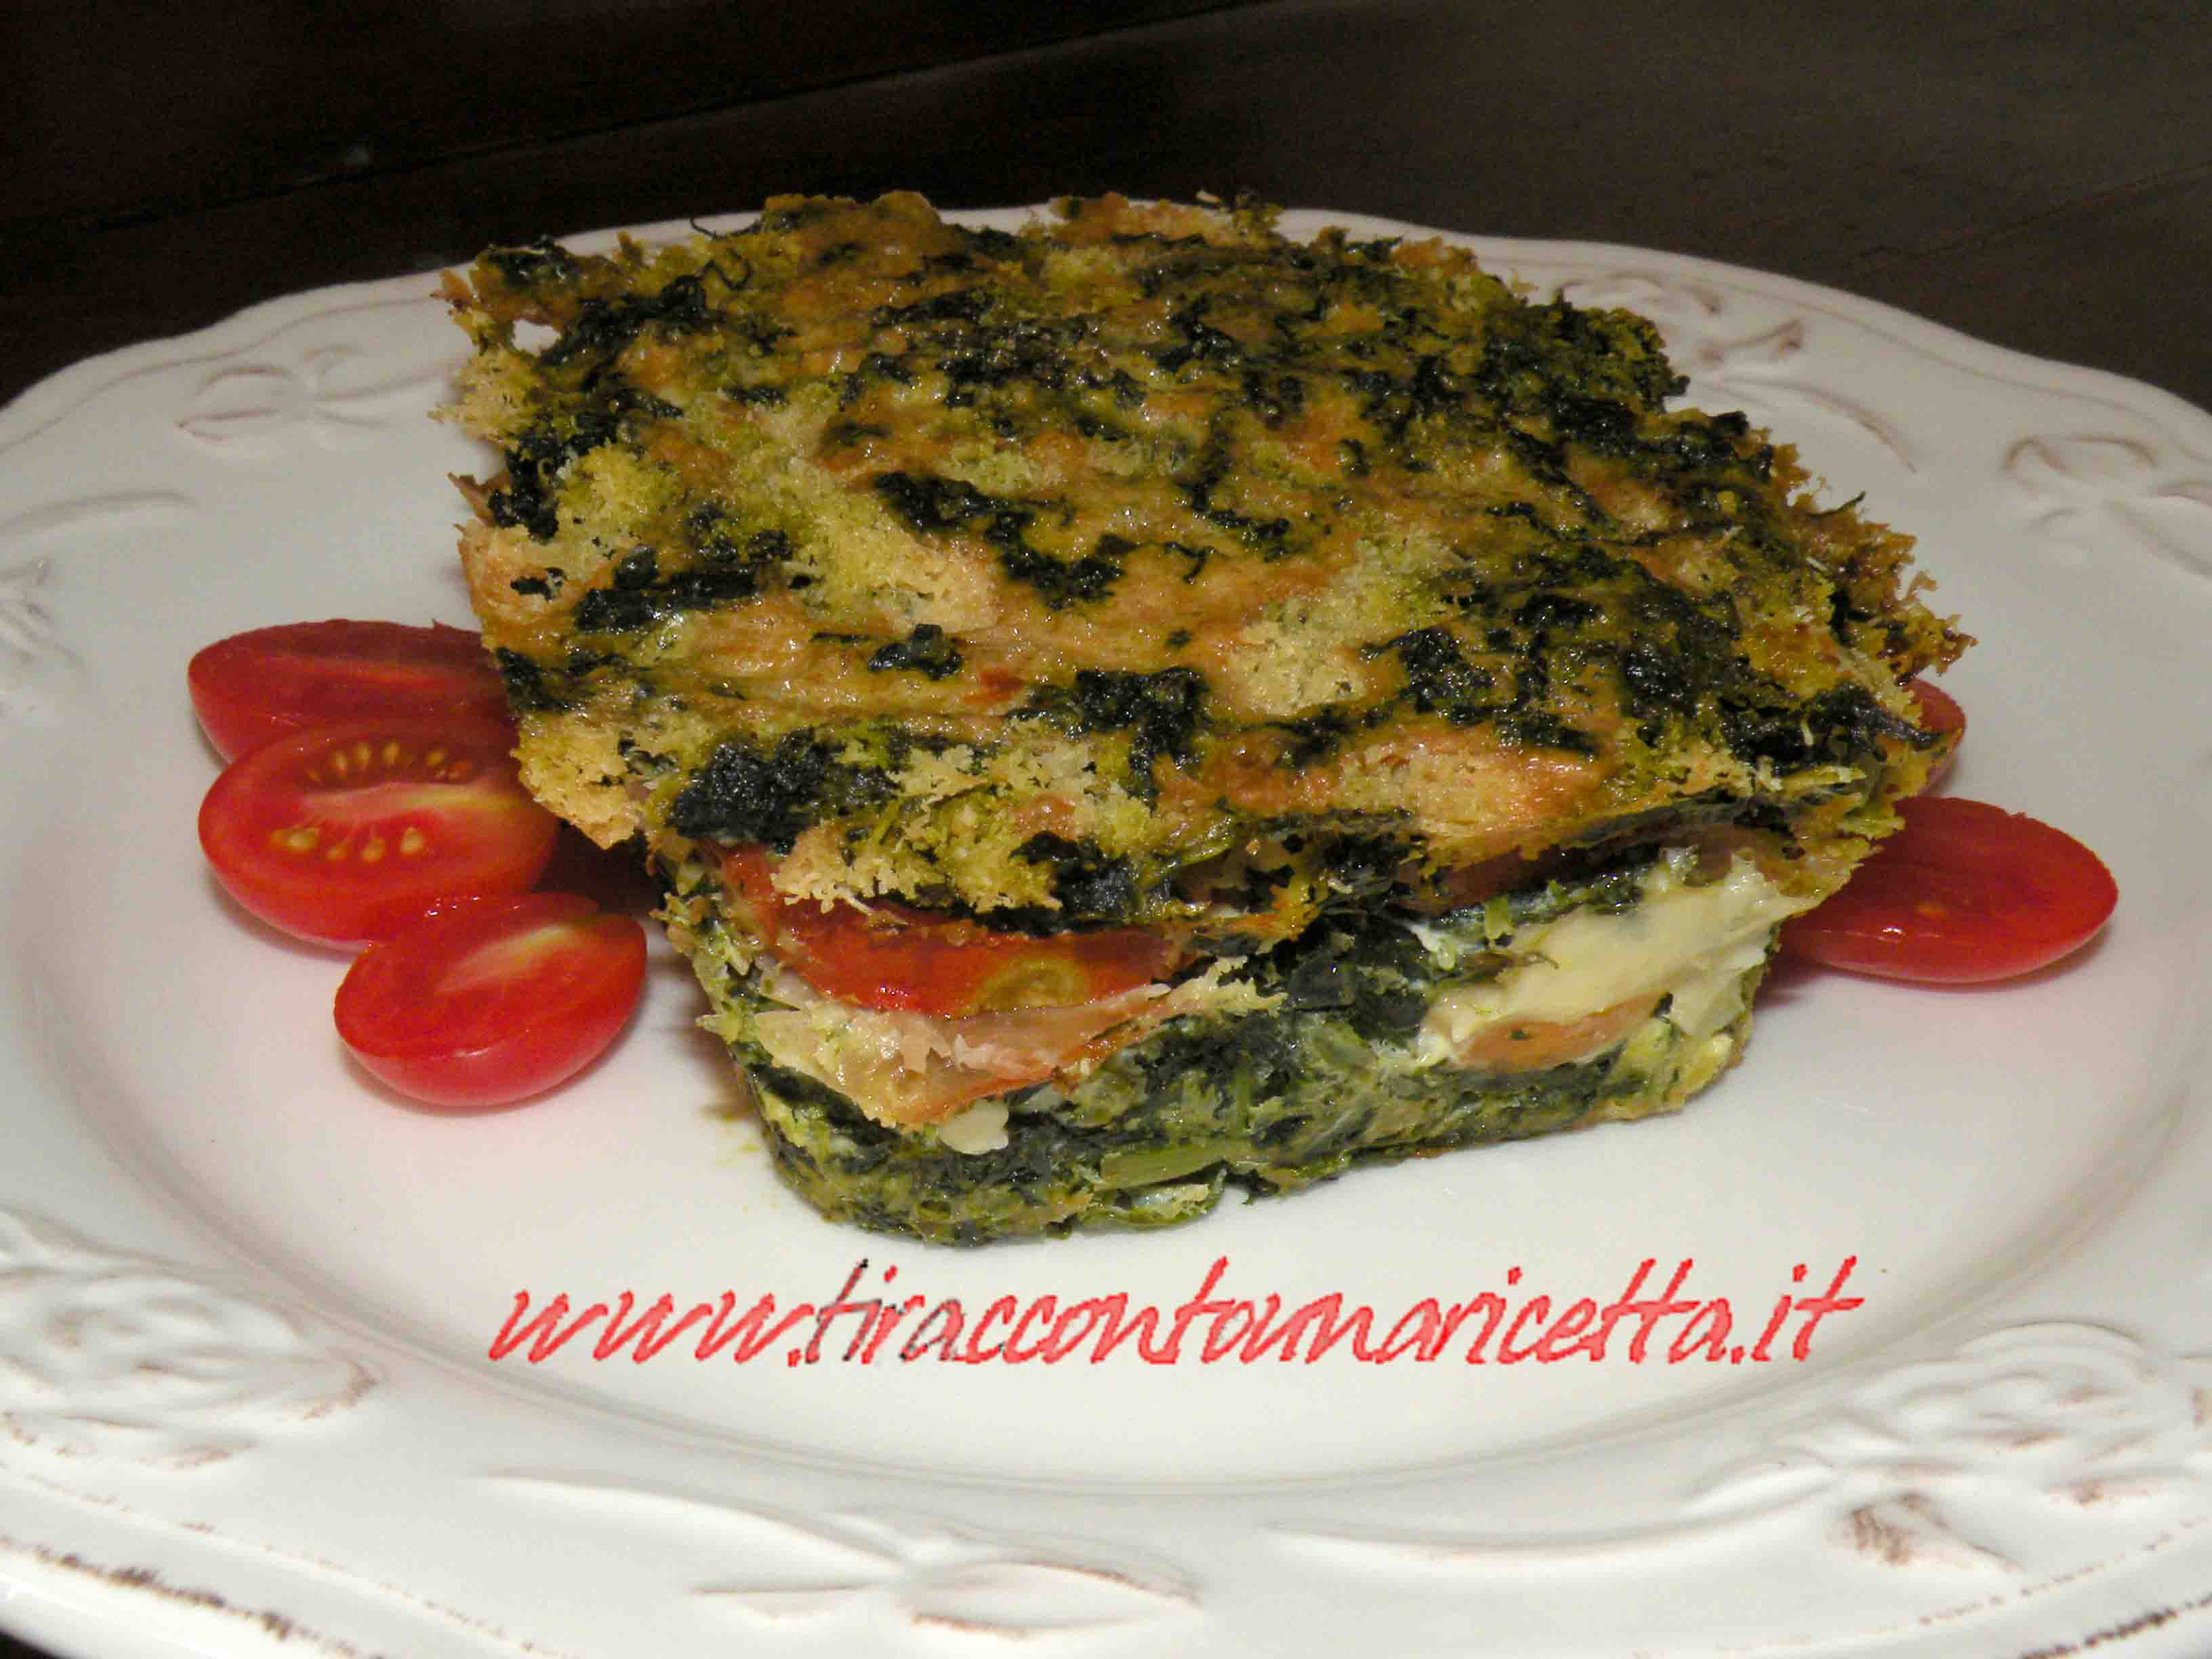 Timbale of chicory